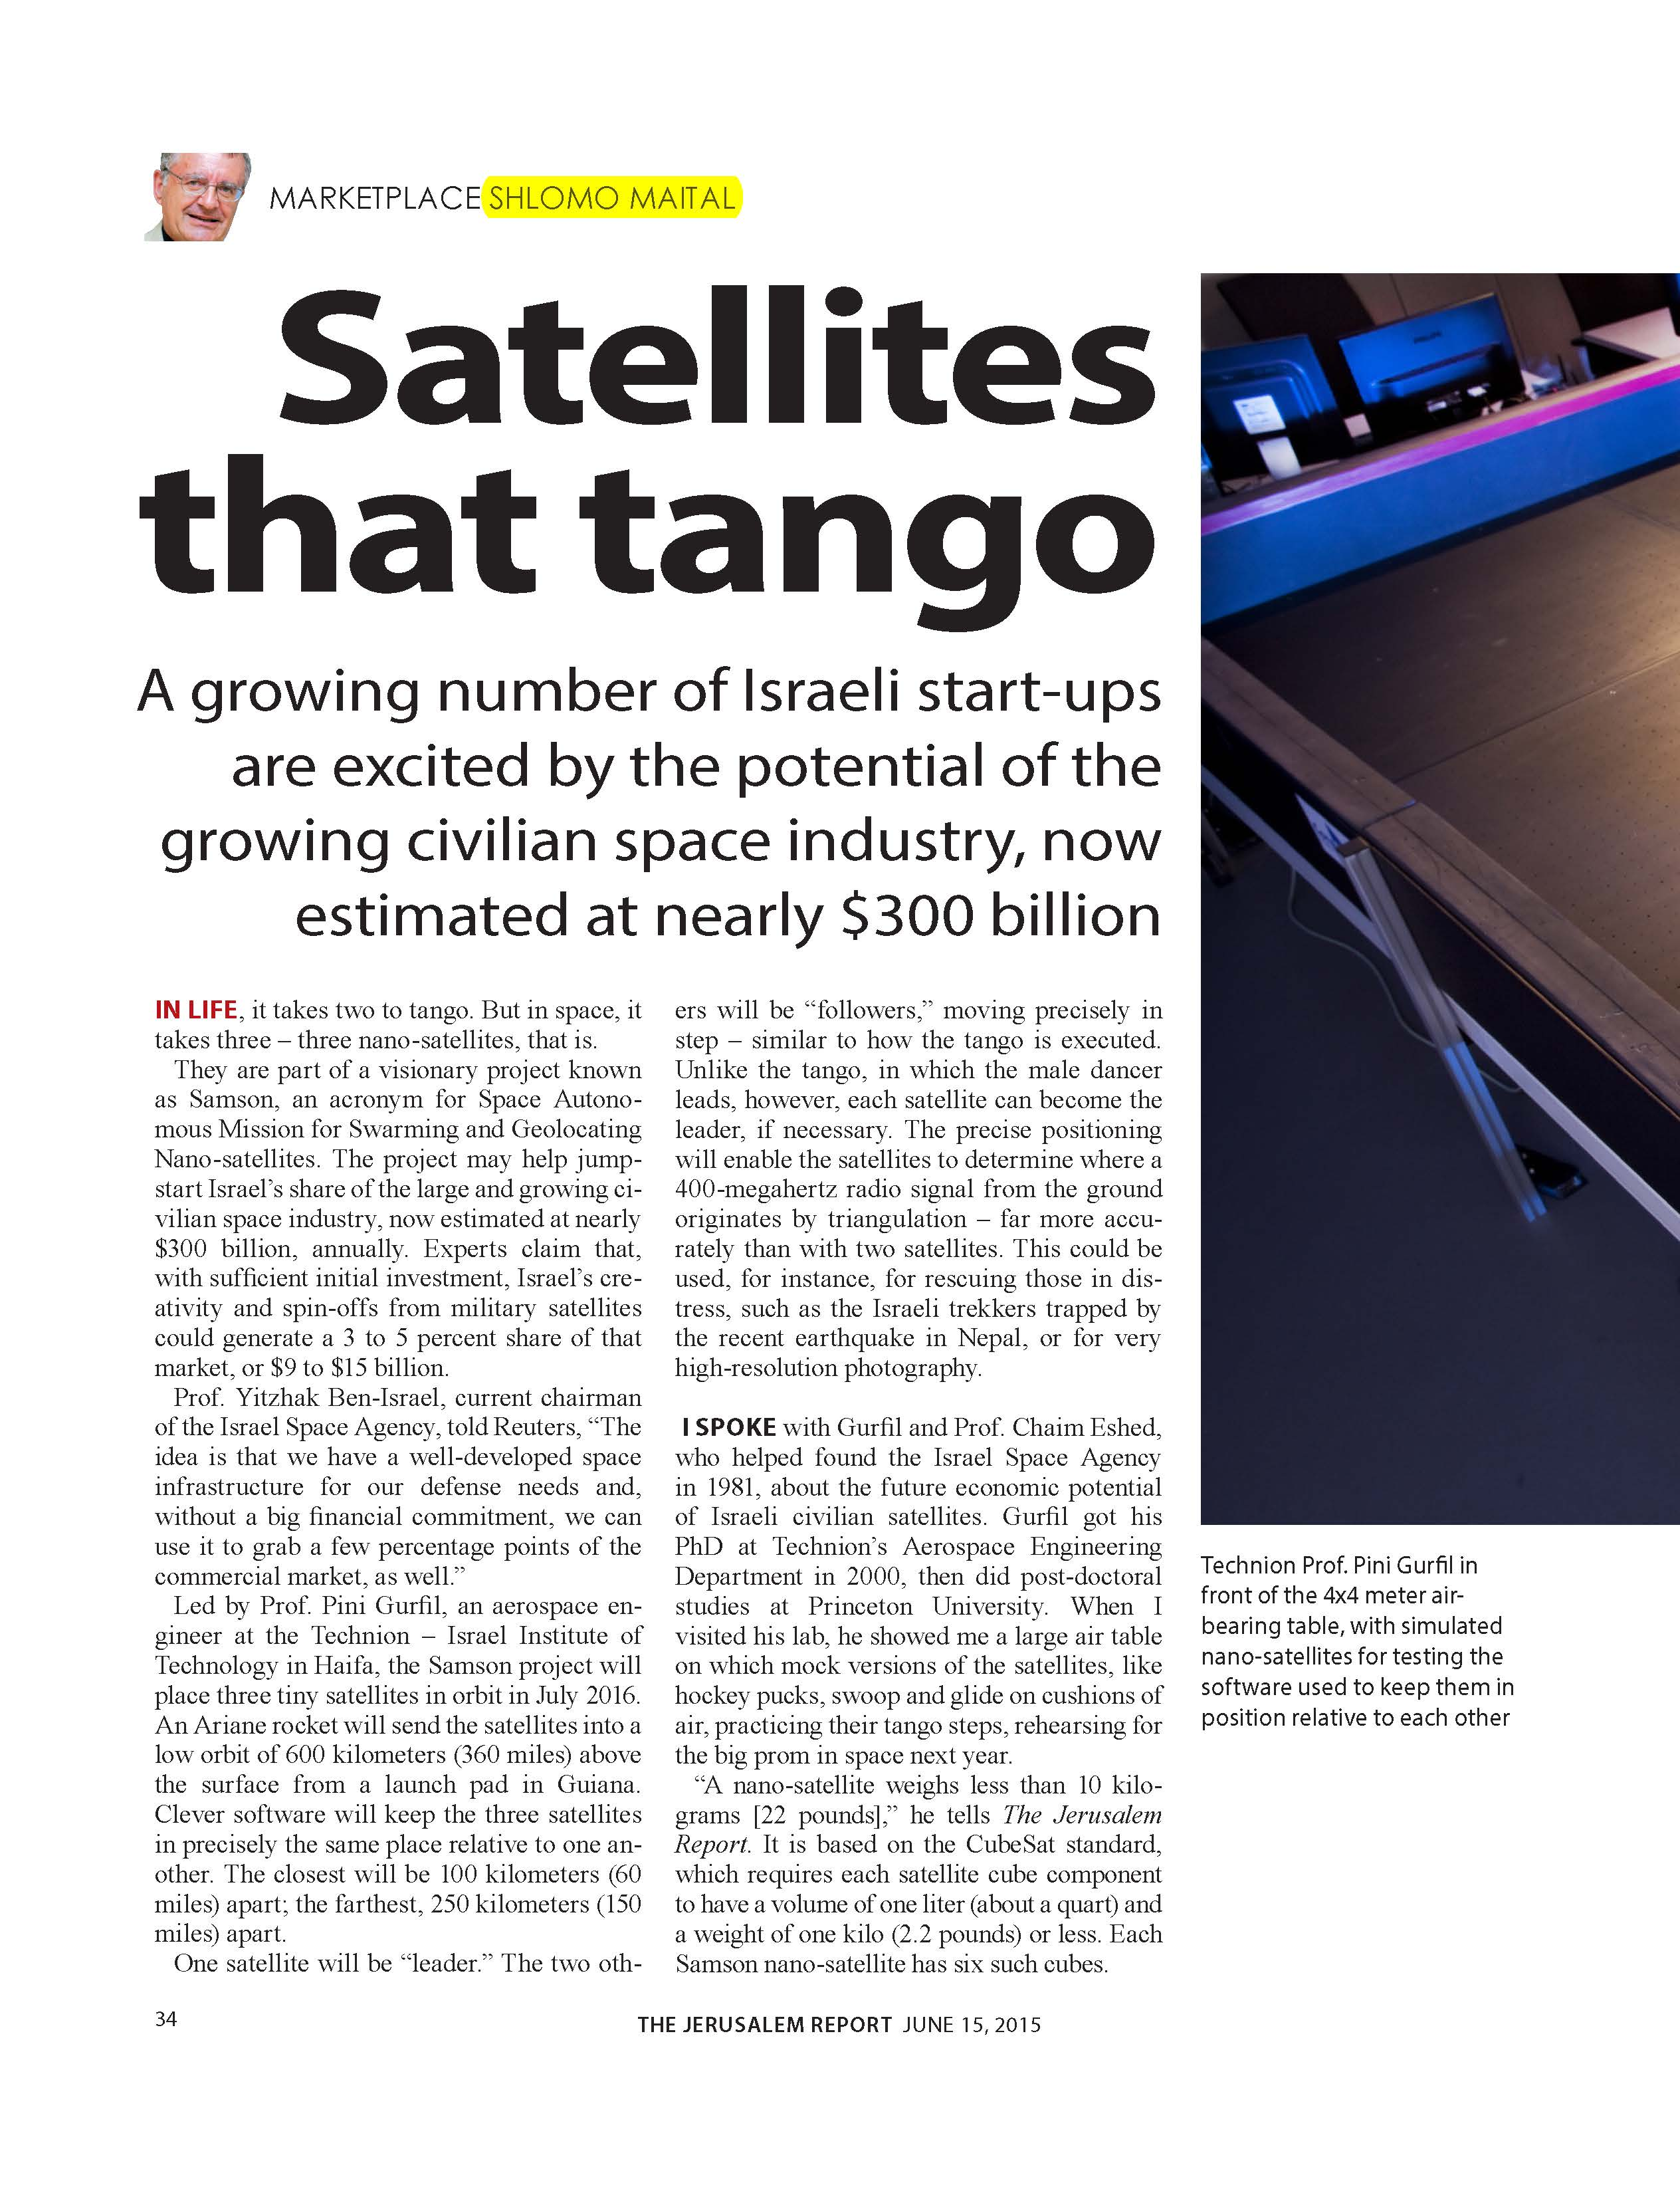 Satellites that tango